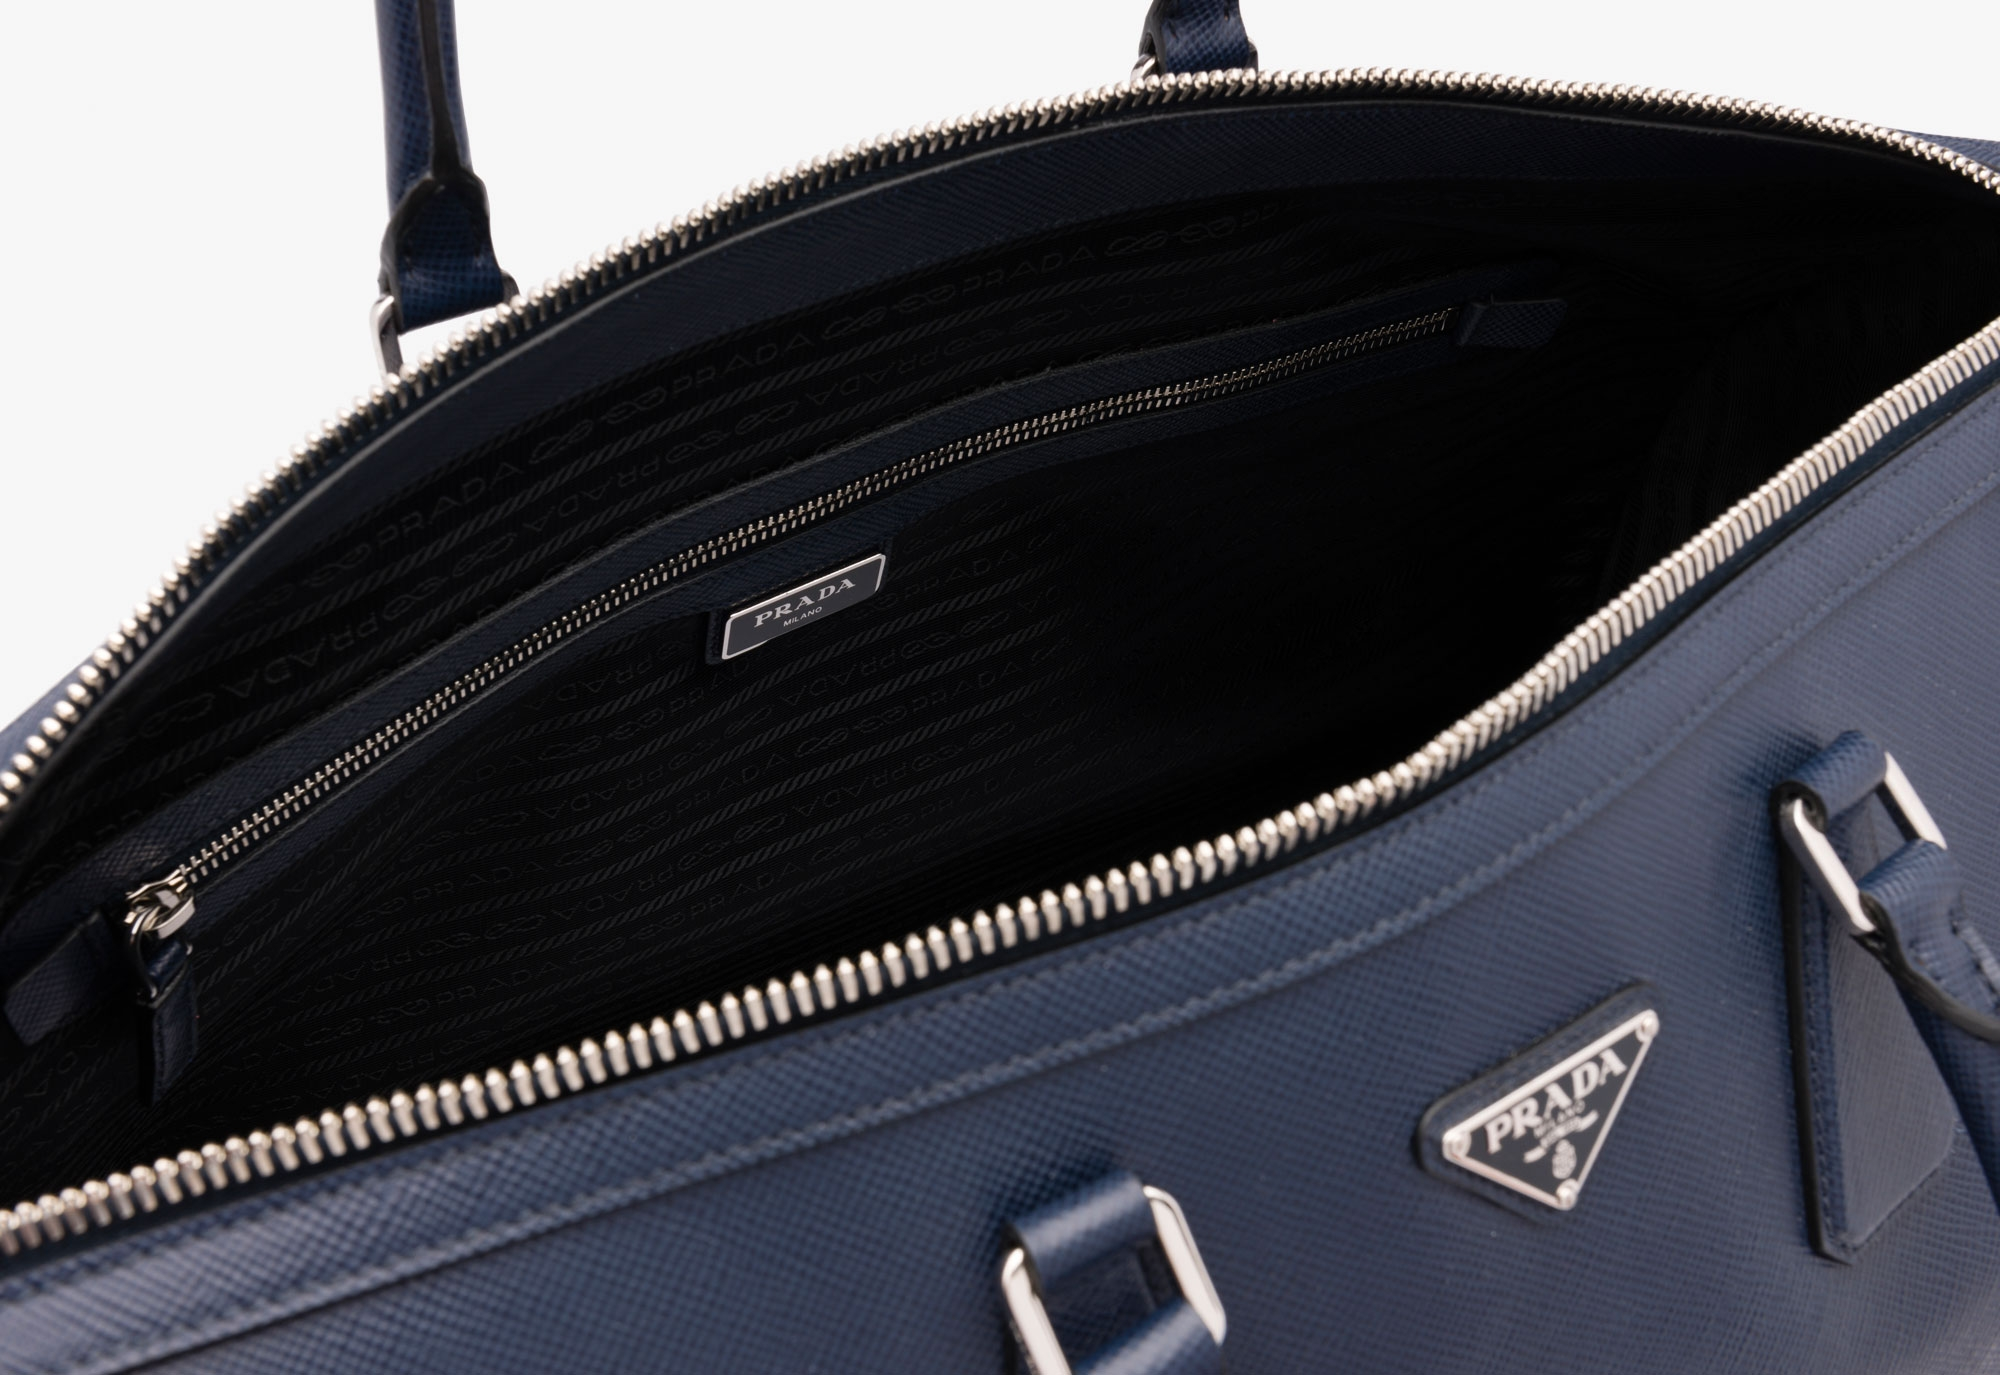 parada handbag - prada leather weekend bag